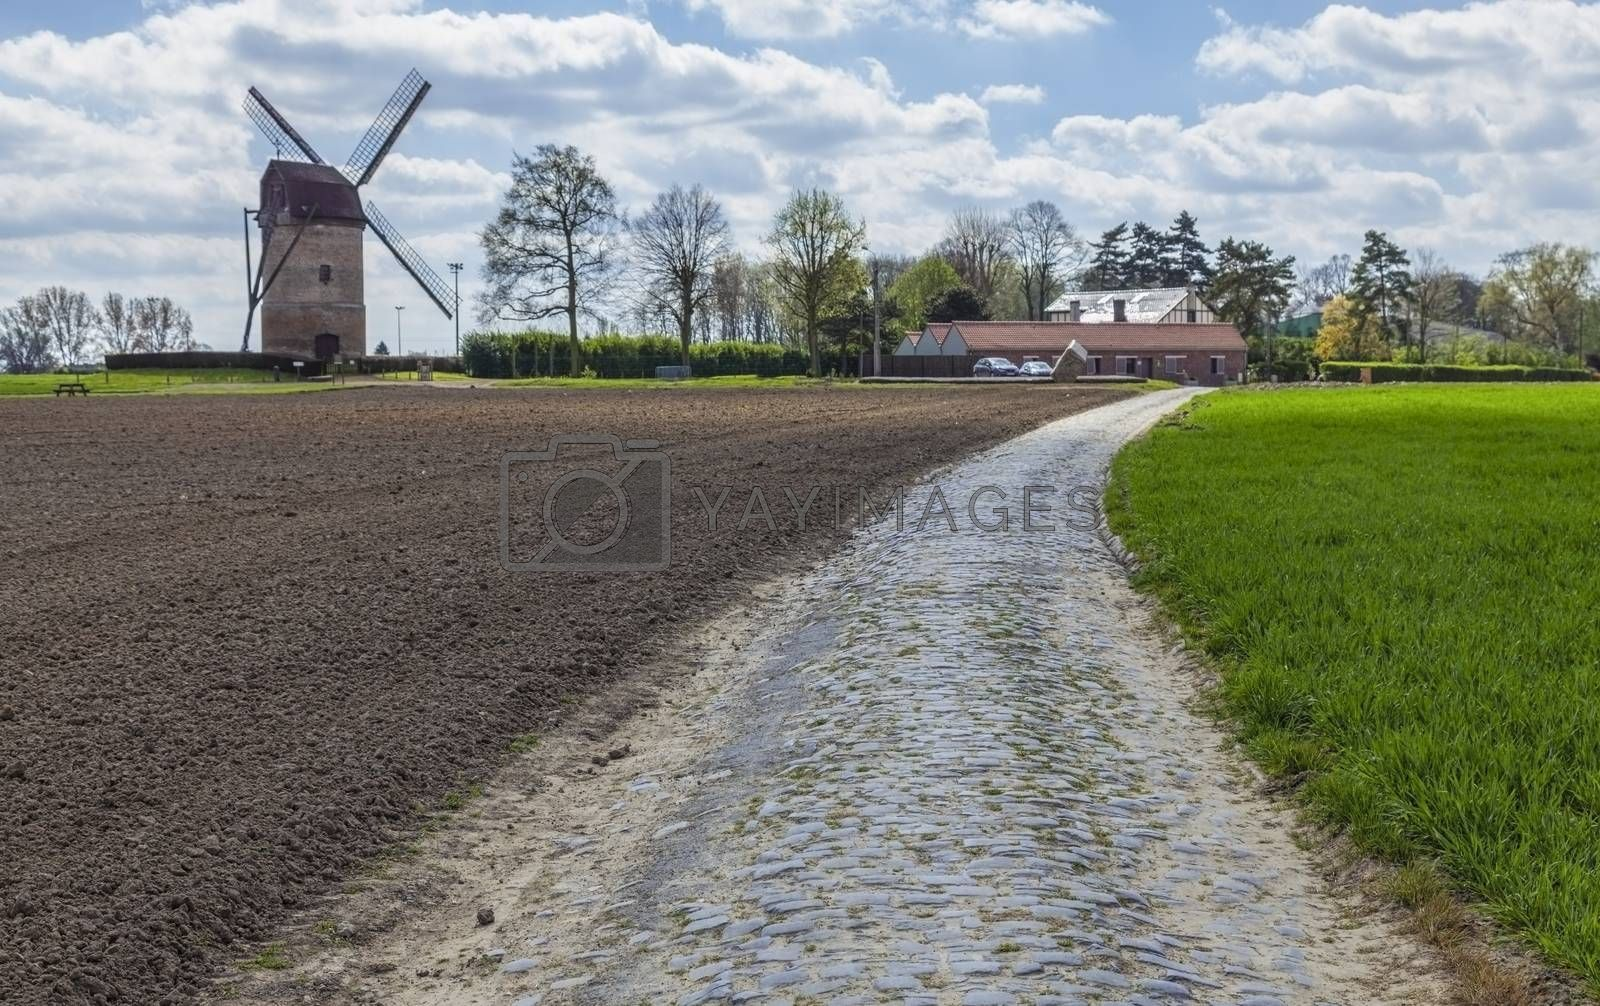 Cobbelstone road located in the North of France near Lille close to a traditional windmill (Moulin de Vertain). On such roads every year is organized one of the most famous one day cycling race Paris-Roubaix.